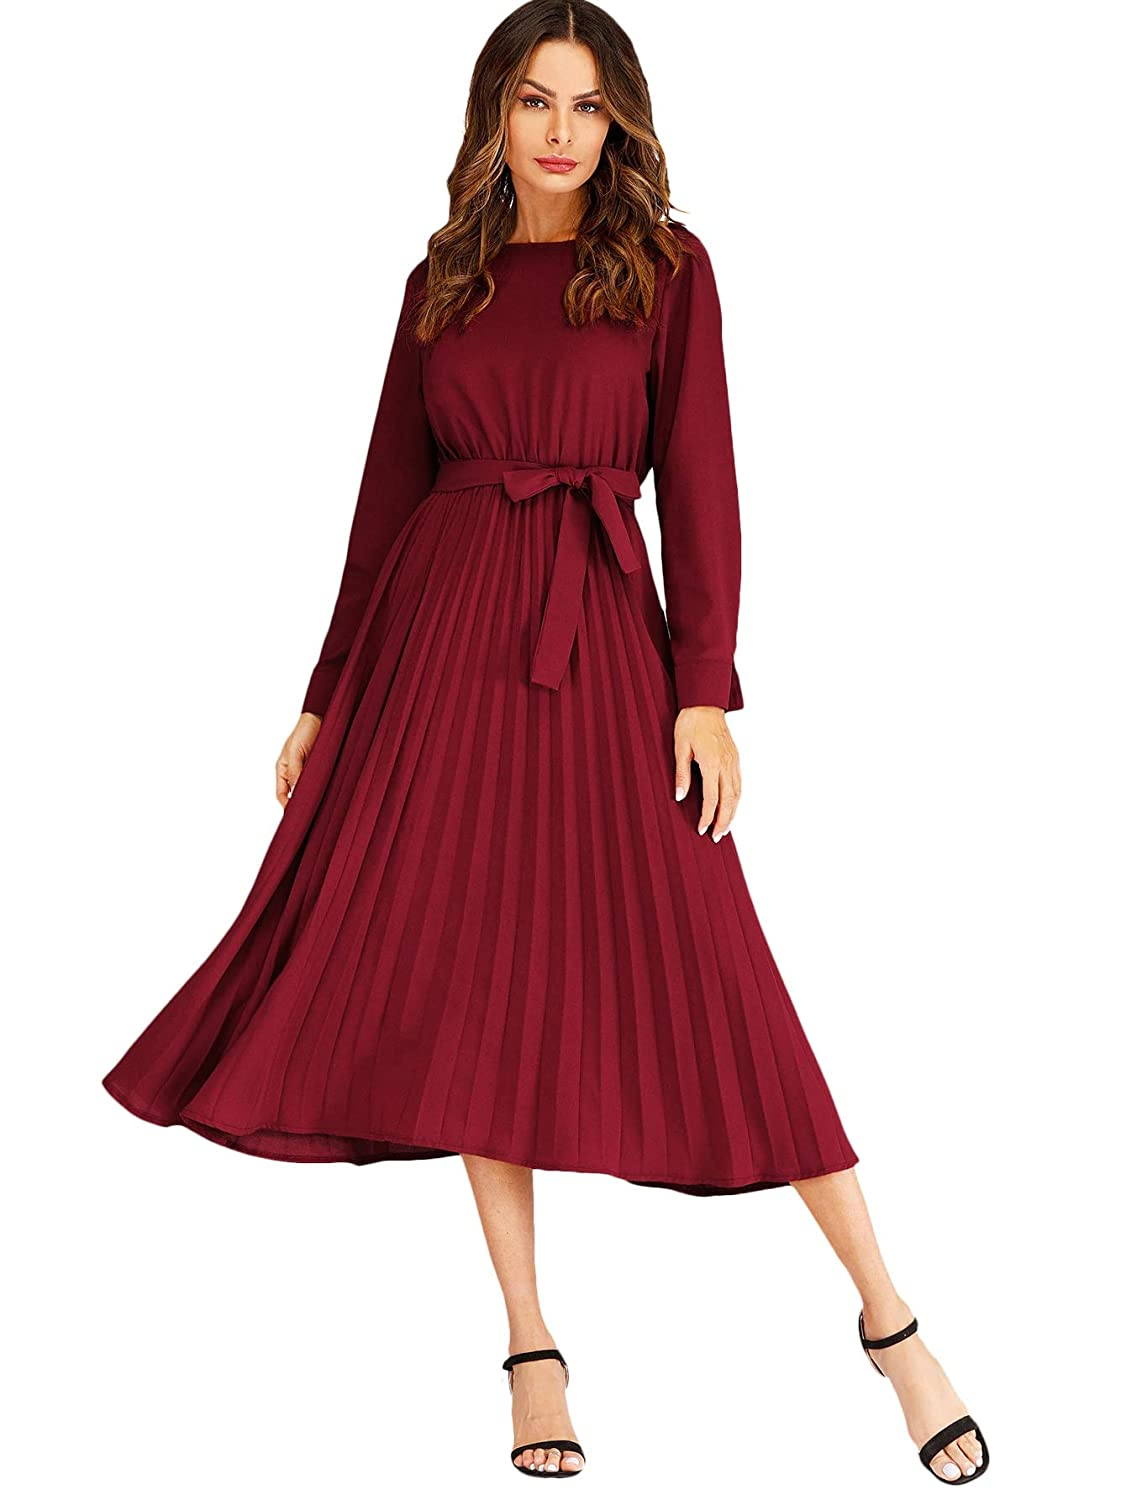 500 Vintage Style Dresses for Sale | Vintage Inspired Dresses Verdusa Womens Round Neck Long Sleeve Belted Pleated Fit and Flare Dress $28.99 AT vintagedancer.com